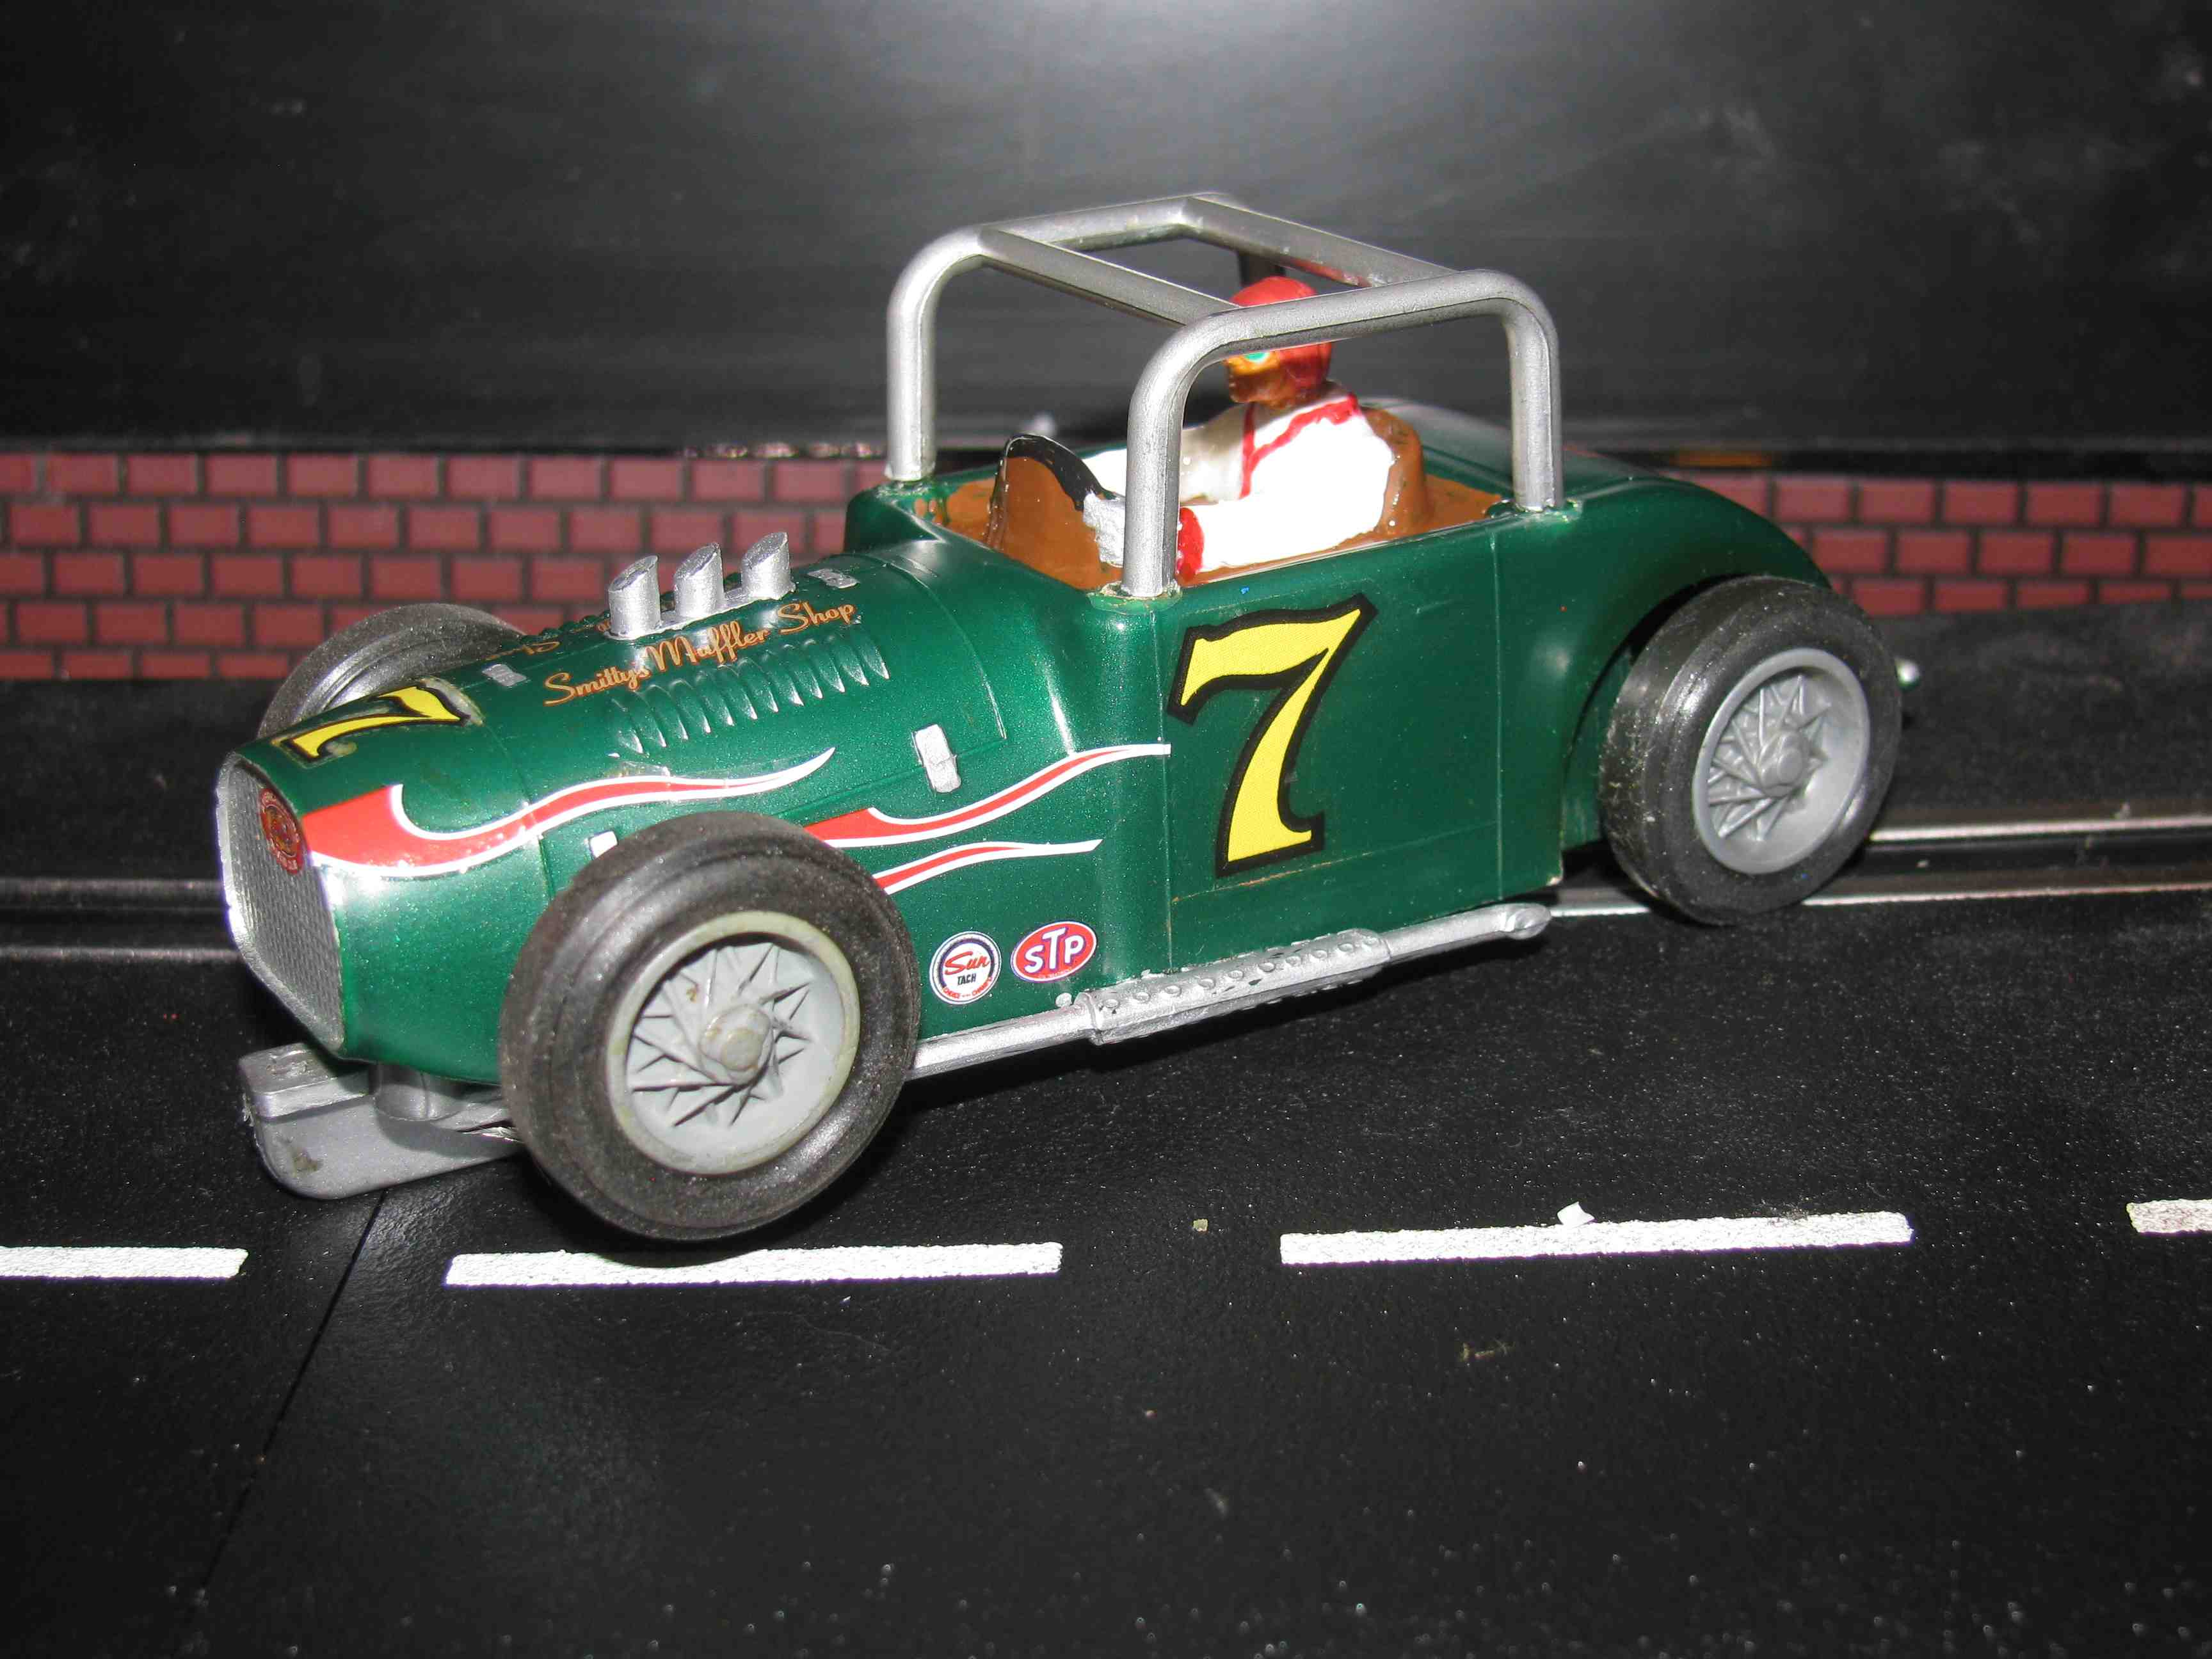 * SOLD * Strombecker Midget Dirt Racer Slot Car 1/32 Scale